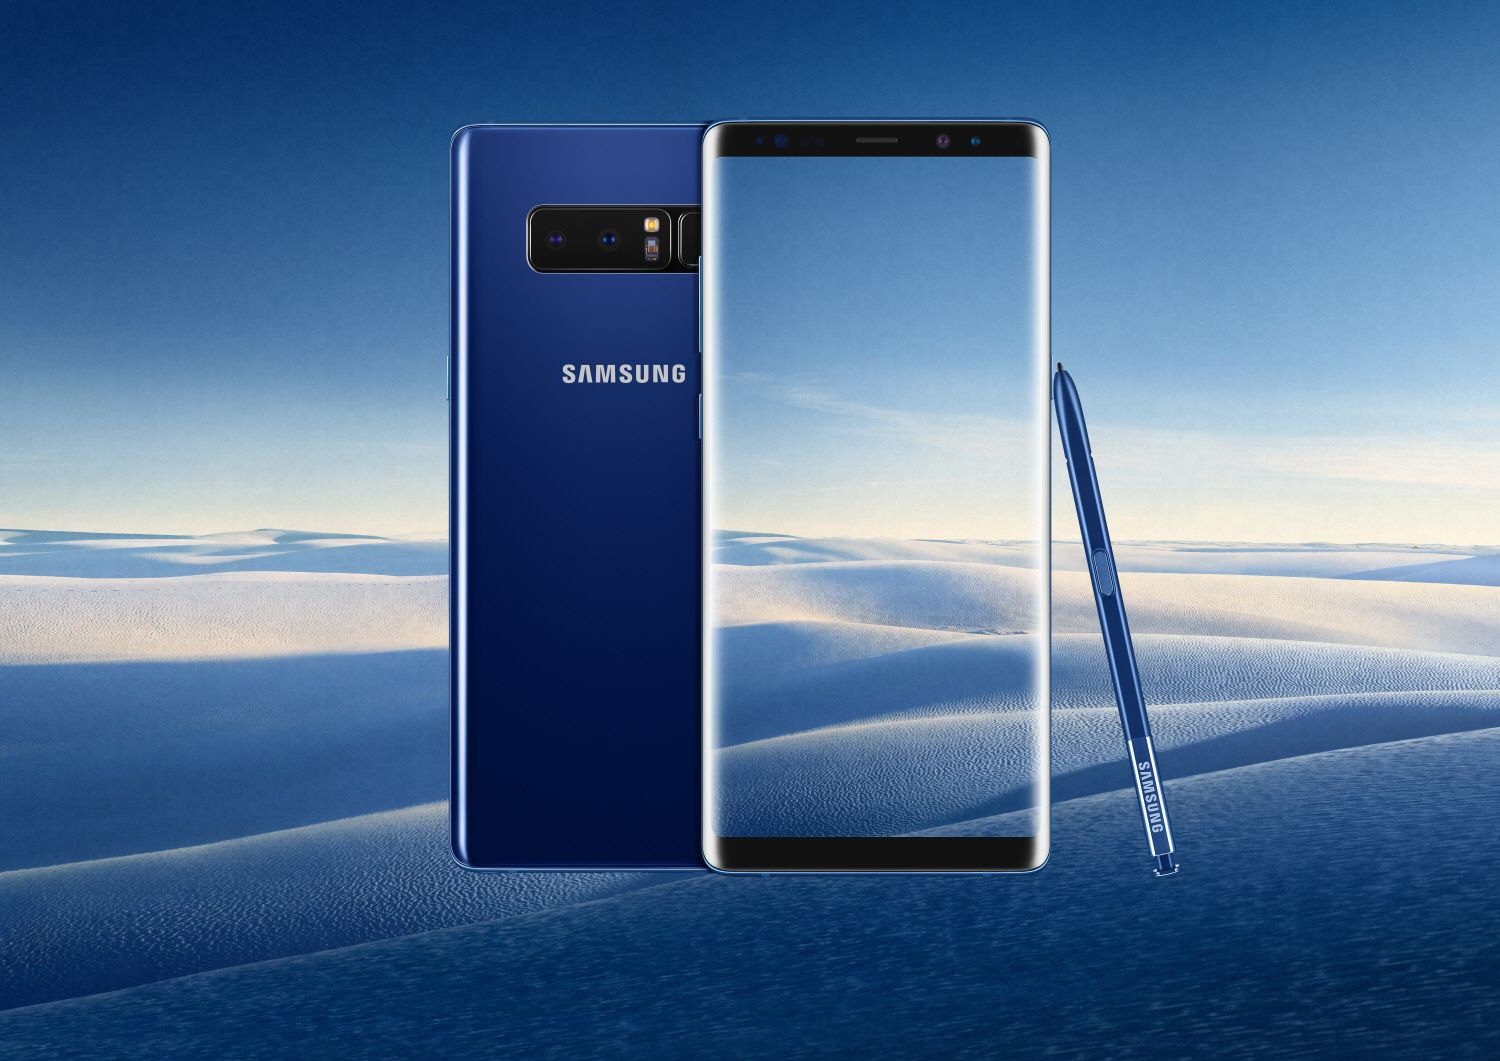 The Galaxy Note 8 is getting a new color in the US, and you're going